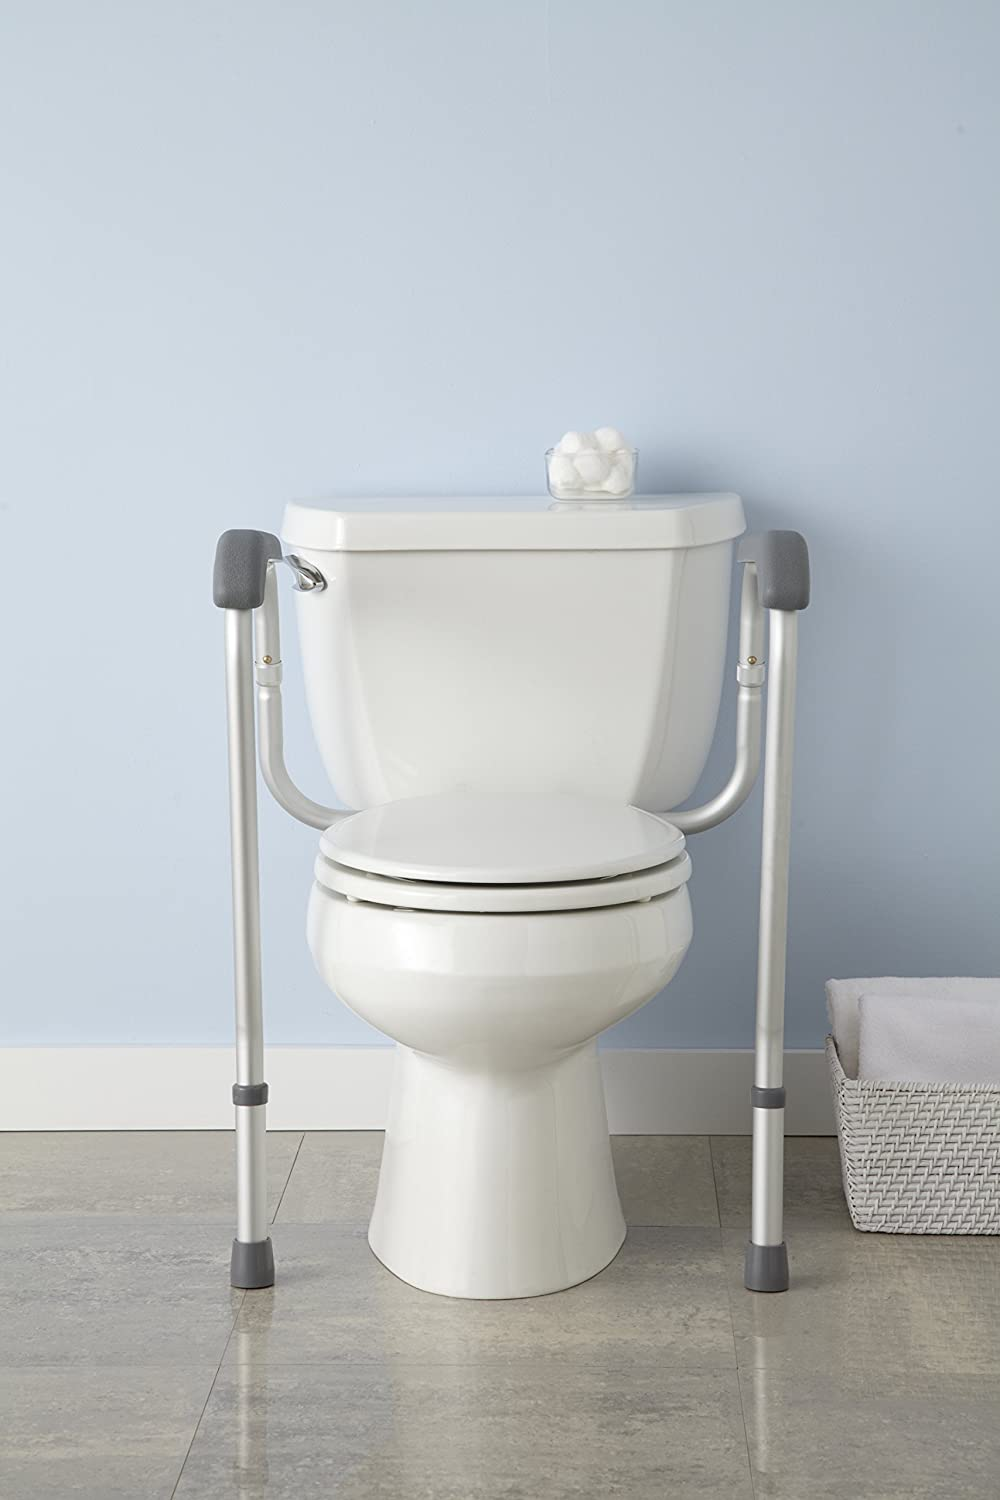 Buy Medline Toilet Safety Rails Online At Low Prices In India   Amazon.in